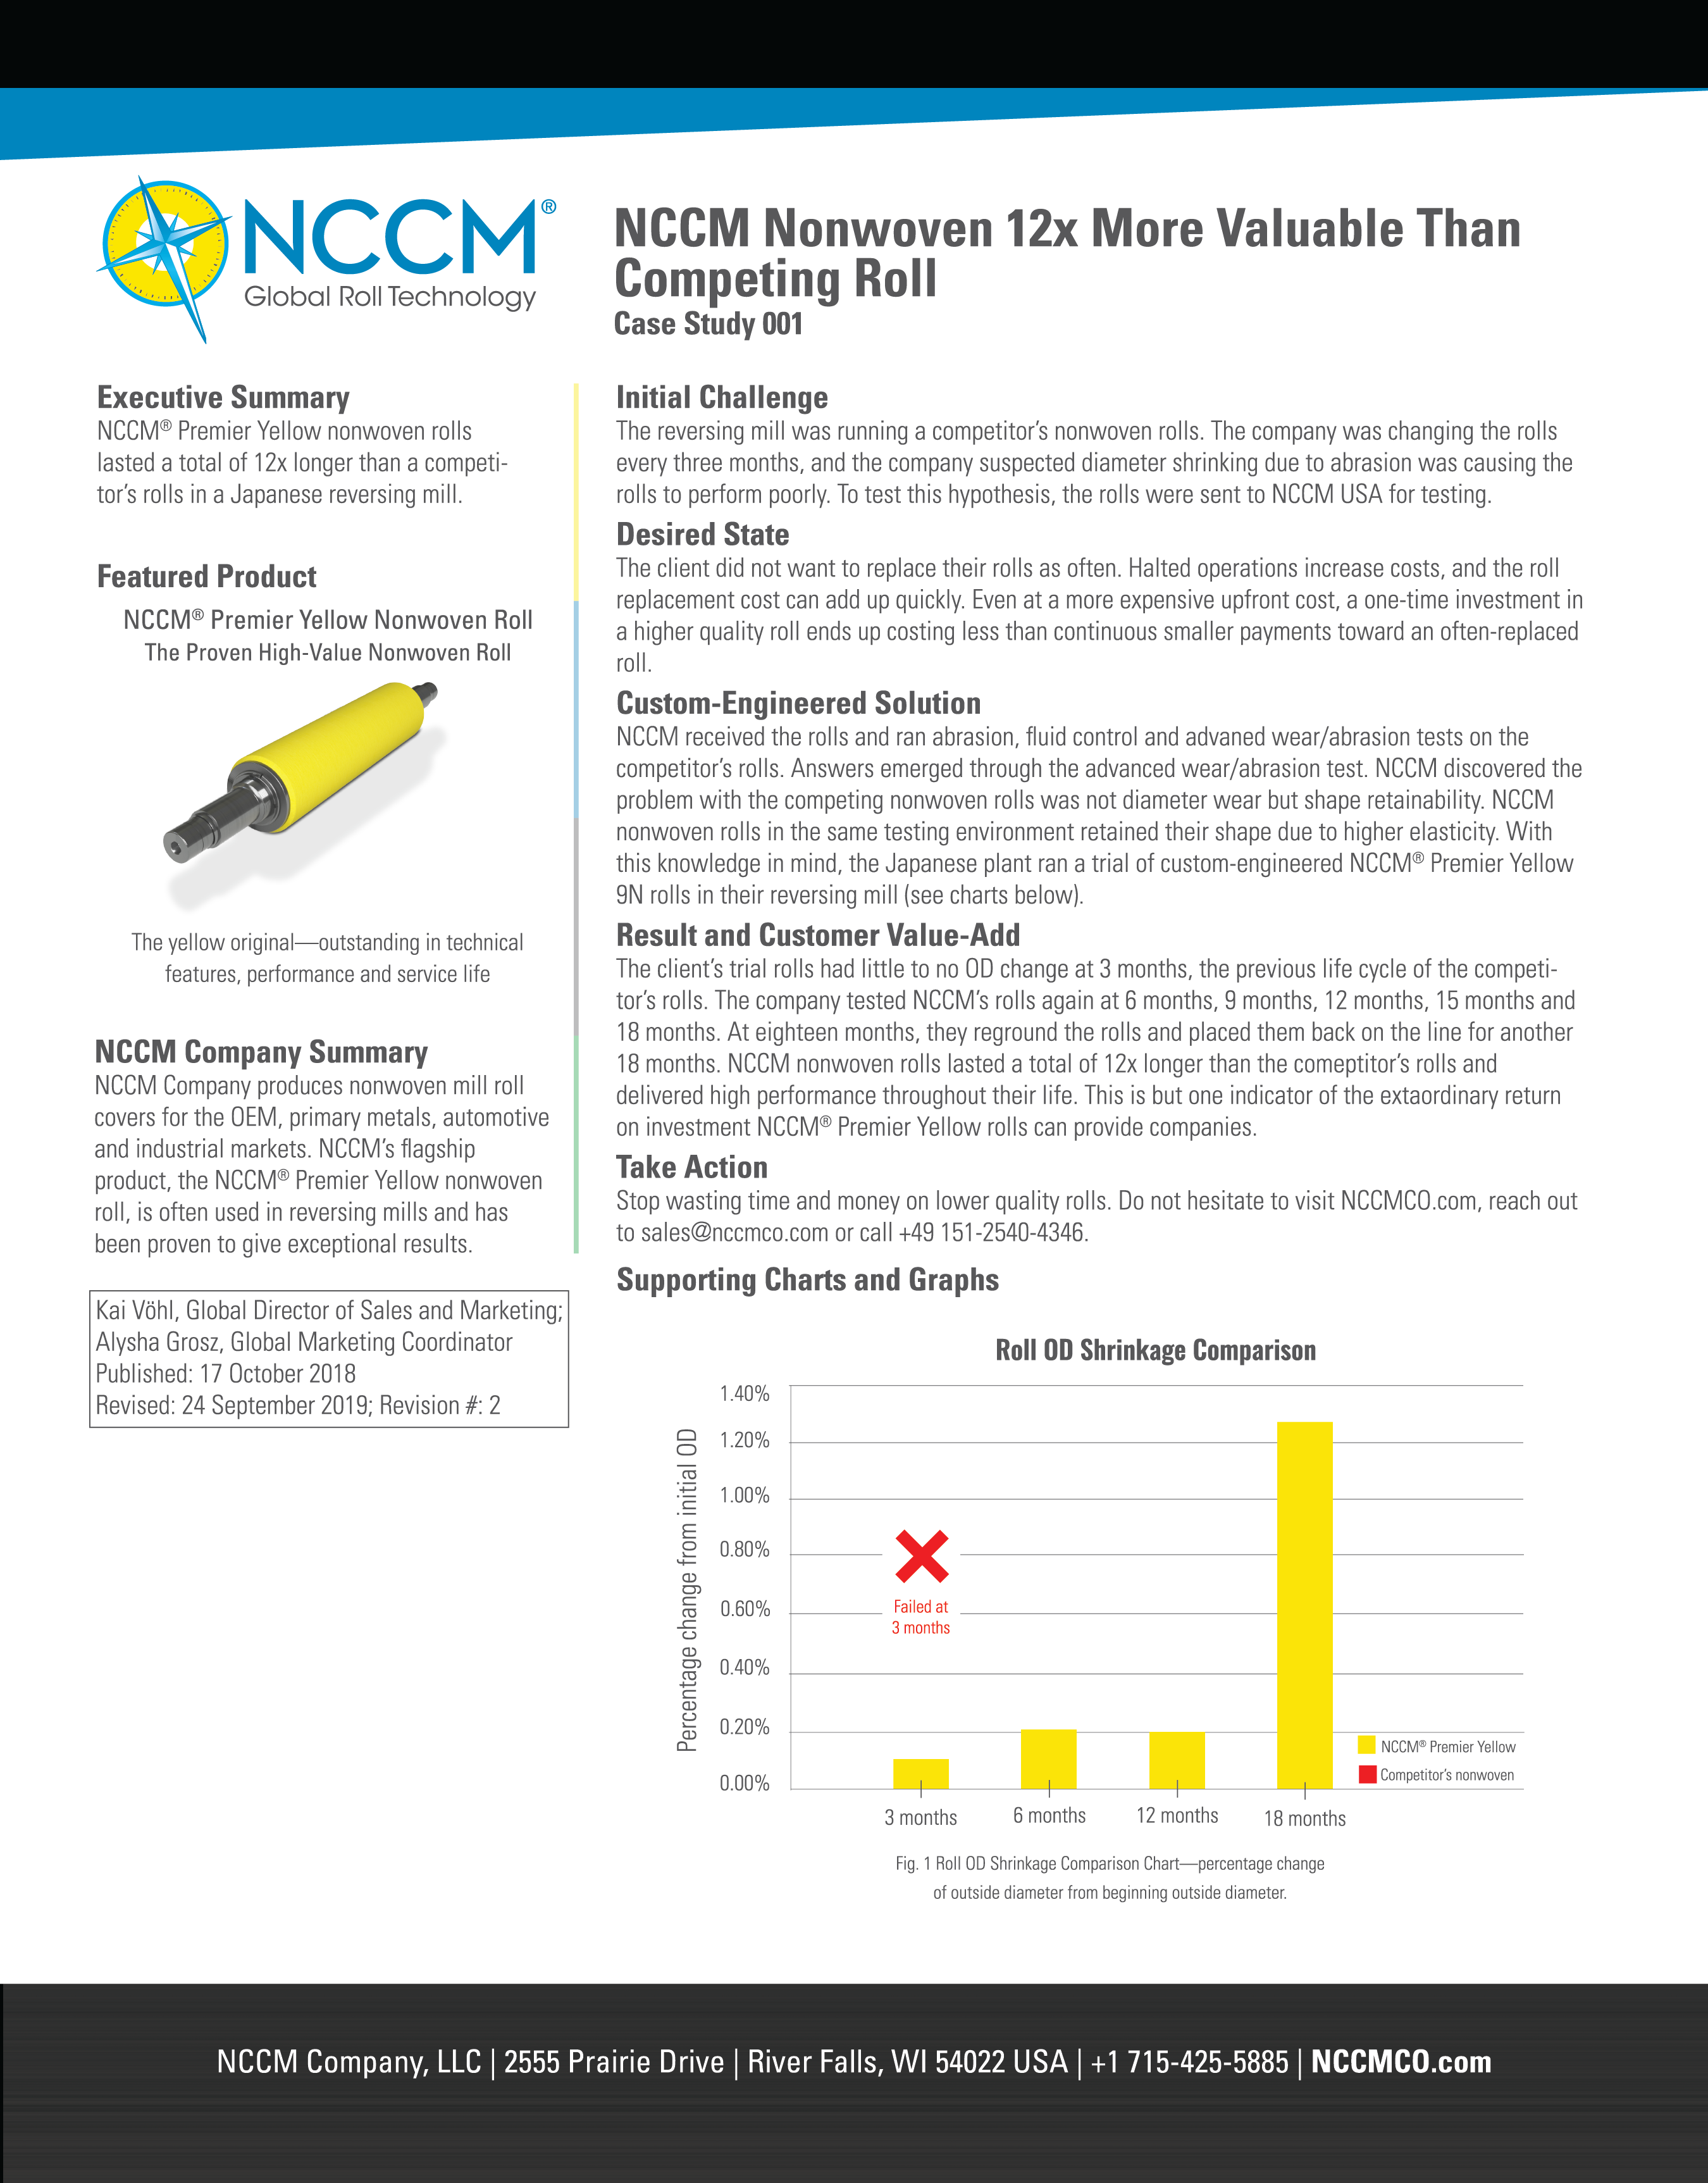 First page of NCCM Nonwoven 12x More Valuable Than Competing Roll case study